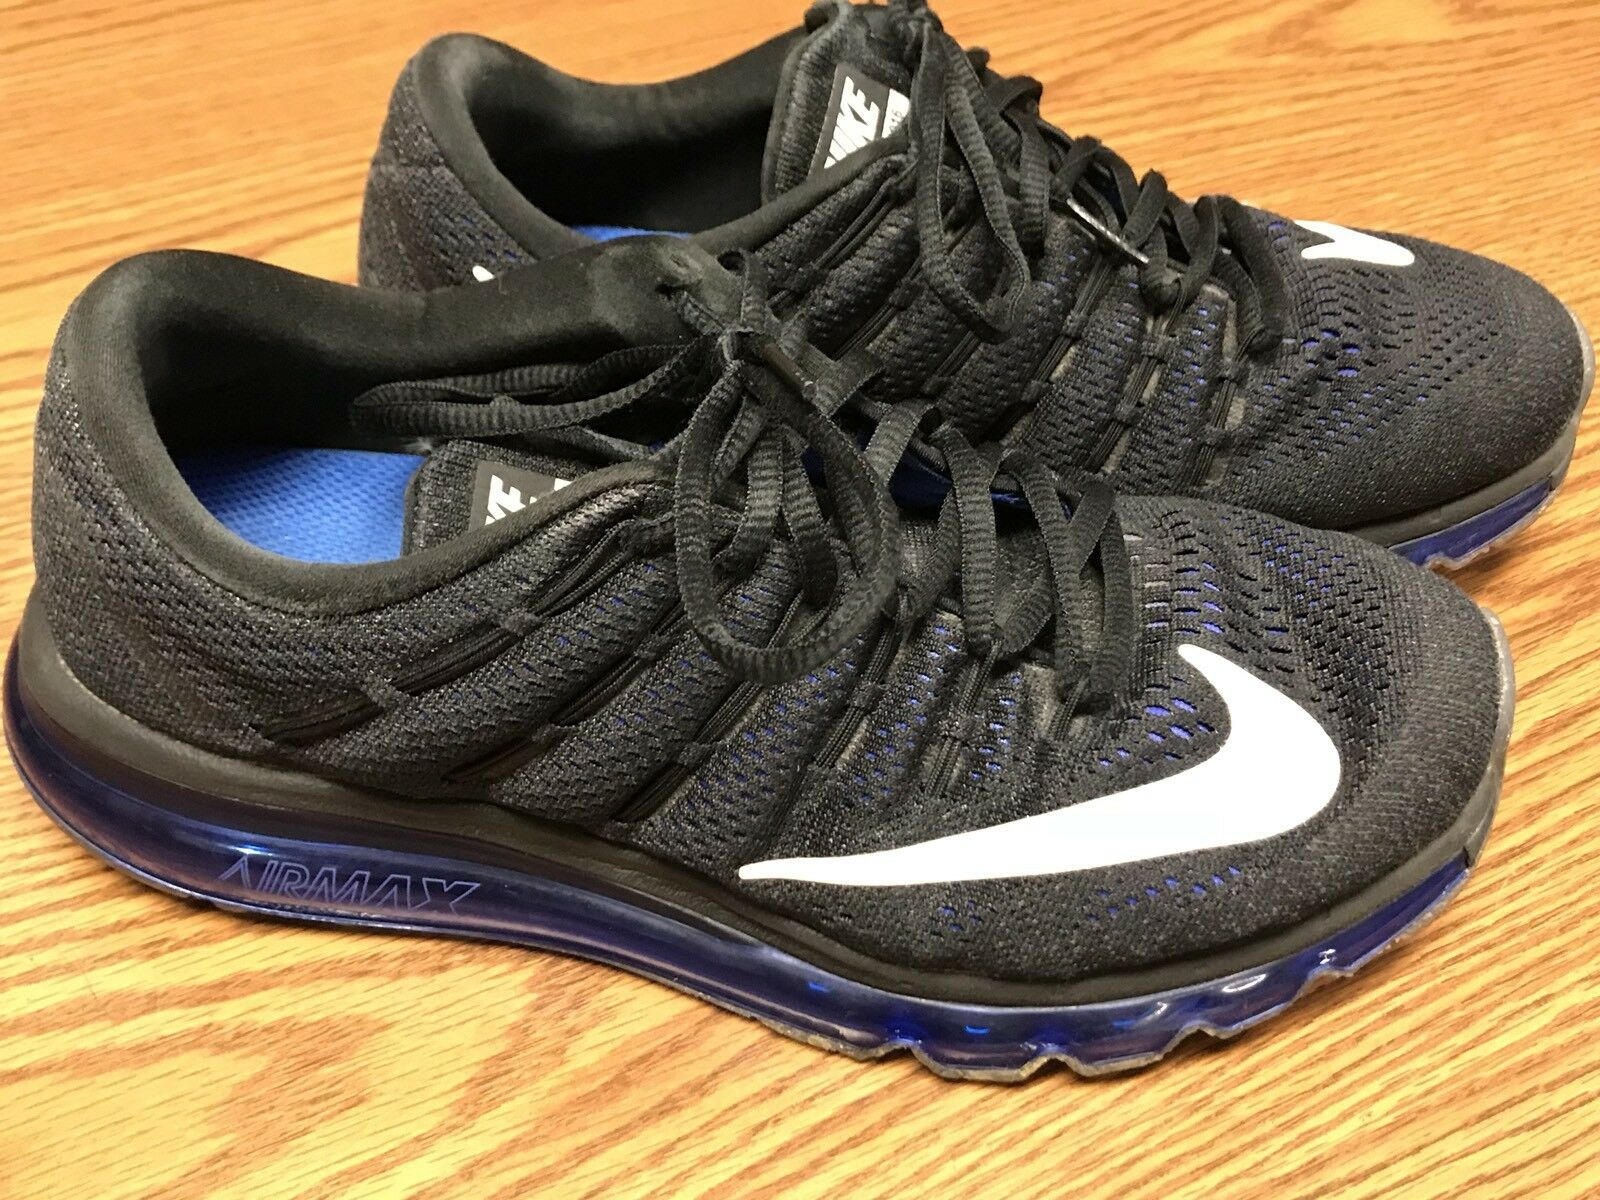 Nike 806771-014 Air Max 2016 Black Racer Blue Running Athletic Shoe Mens Sz 8.5 Wild casual shoes